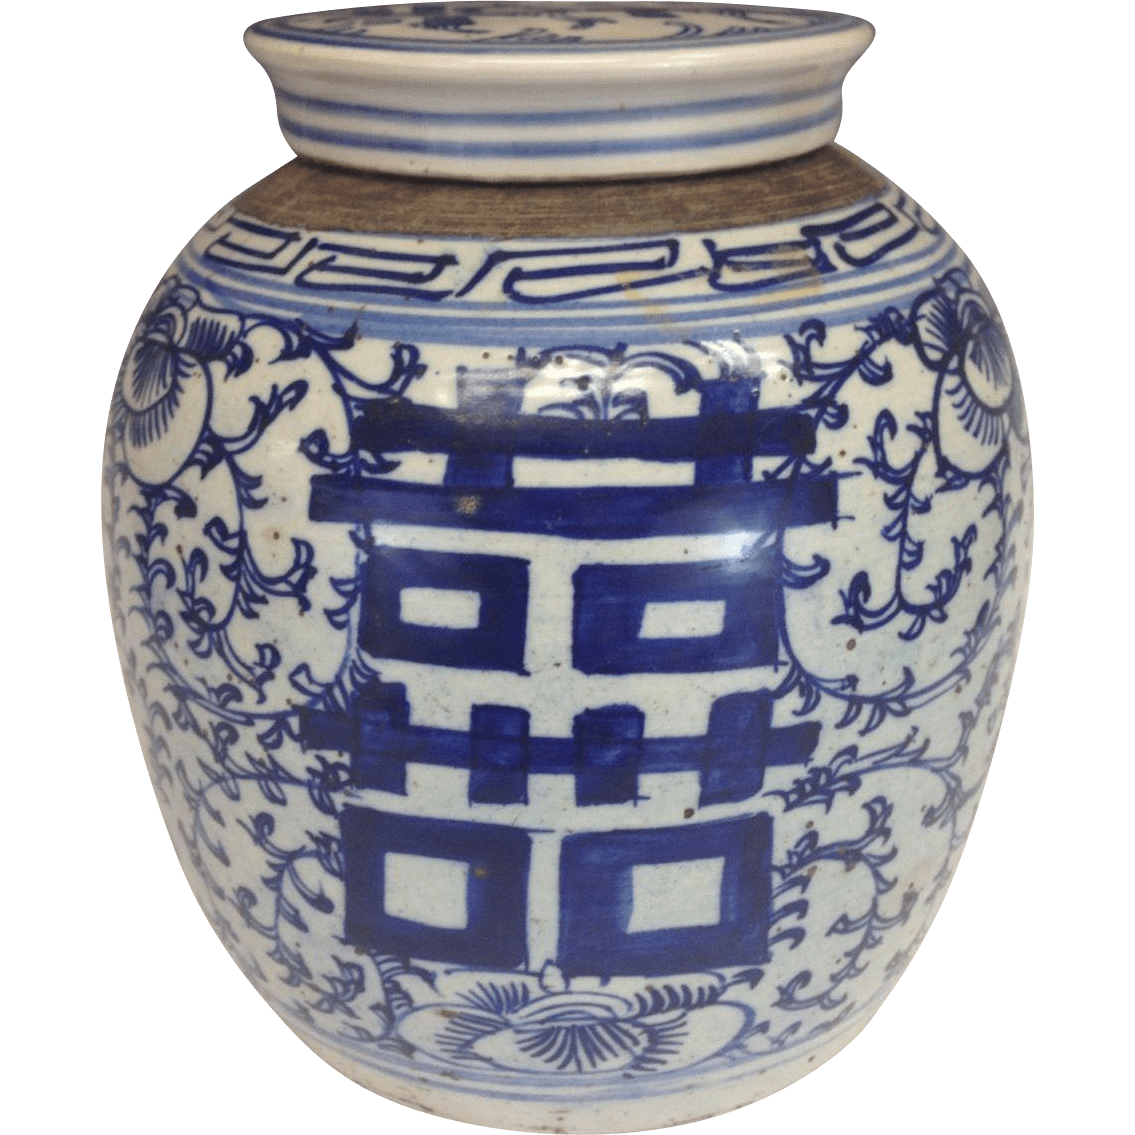 Old chinese vase image collections vases design picture antique chinese porcelain vase transparent png stickpng antique chinese porcelain vase reviewsmspy reviewsmspy